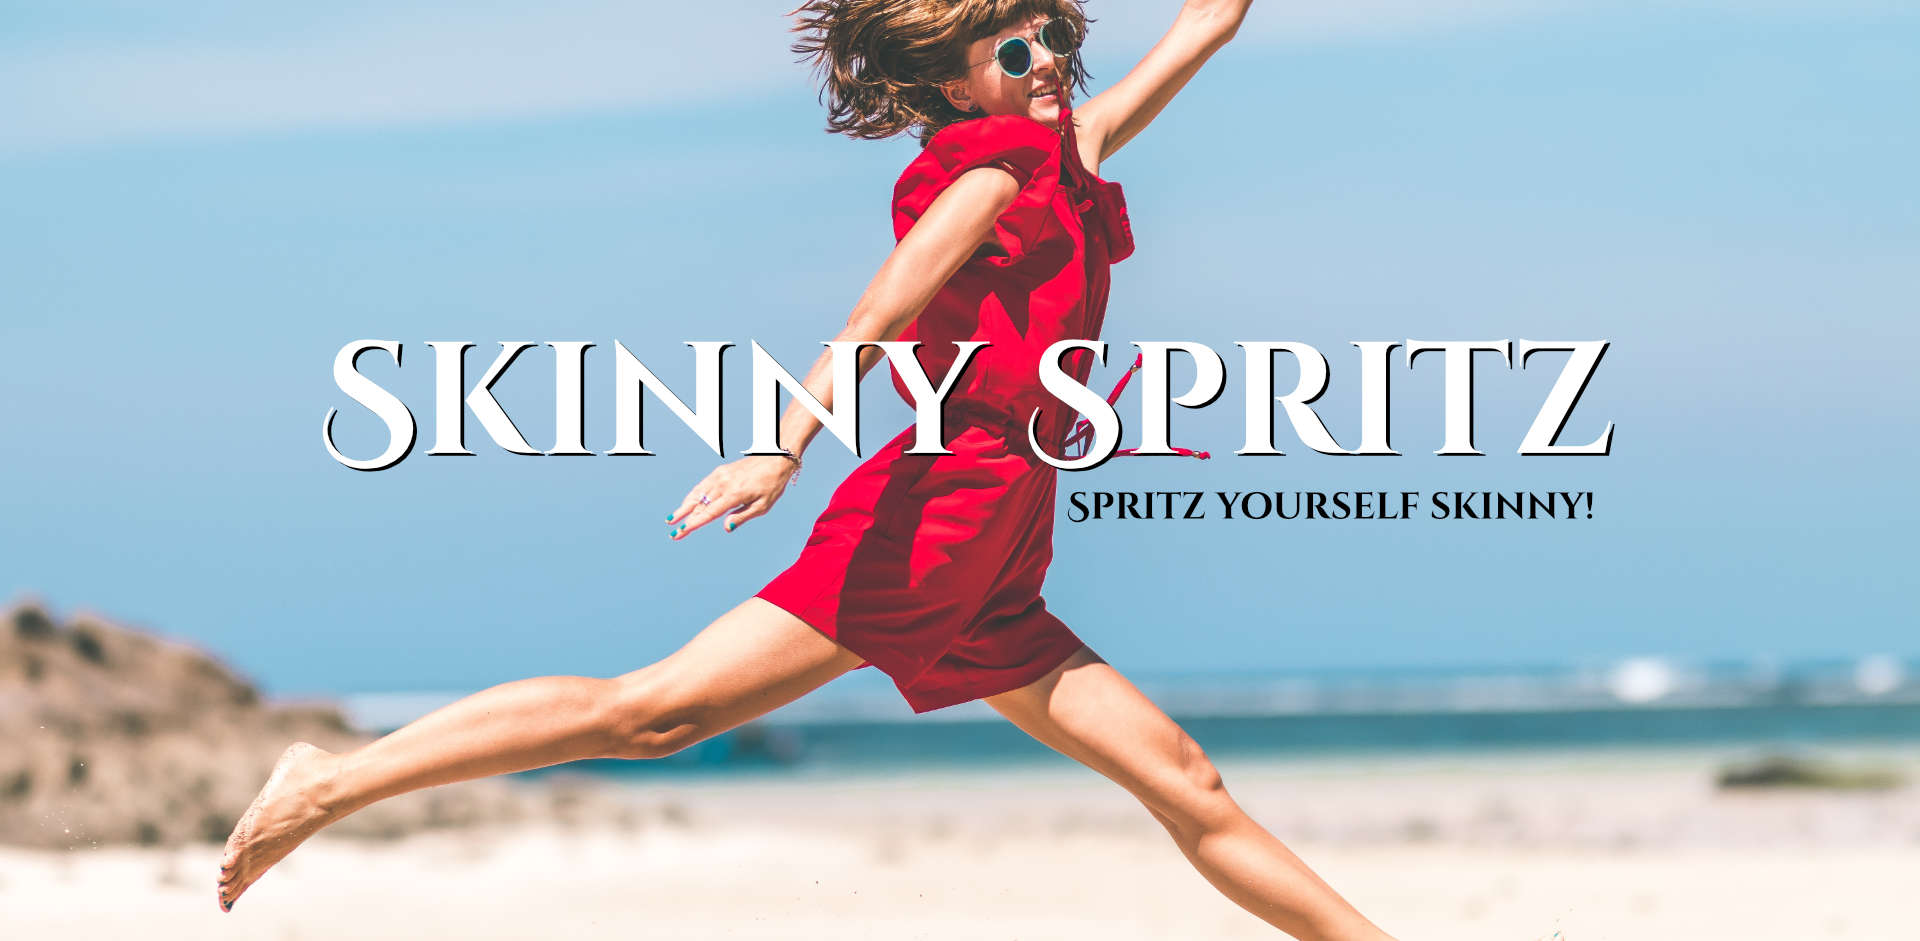 about the skinny spritz